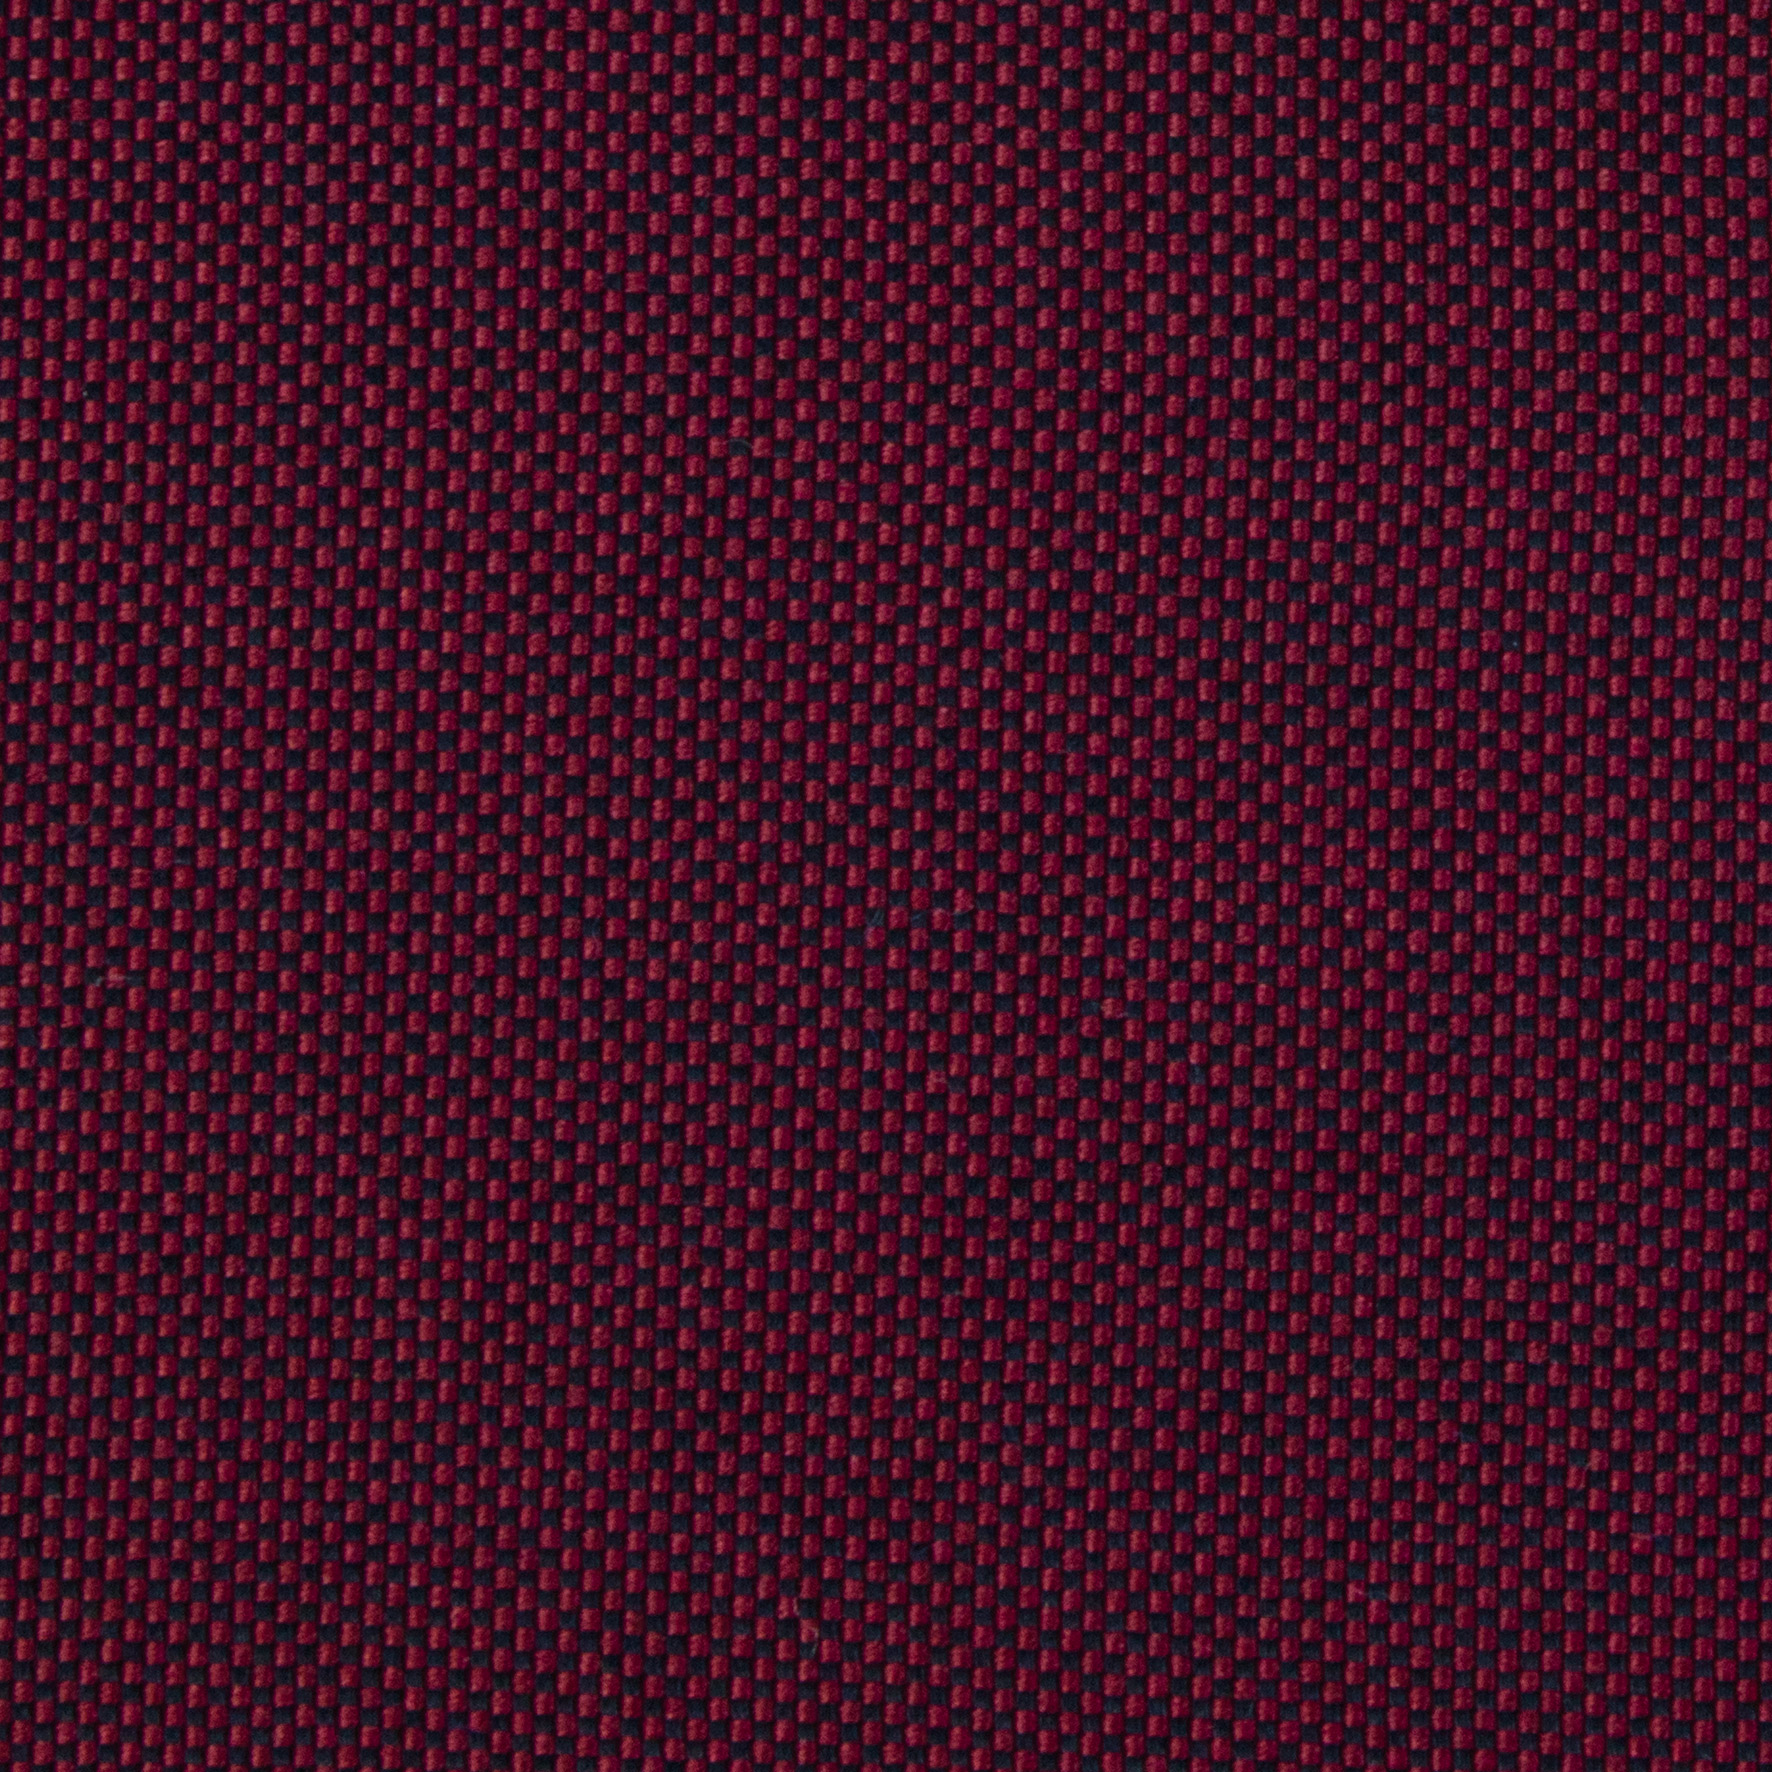 Buy tailor made shirts online - Antonio Range - Burgundy Diamond Weave